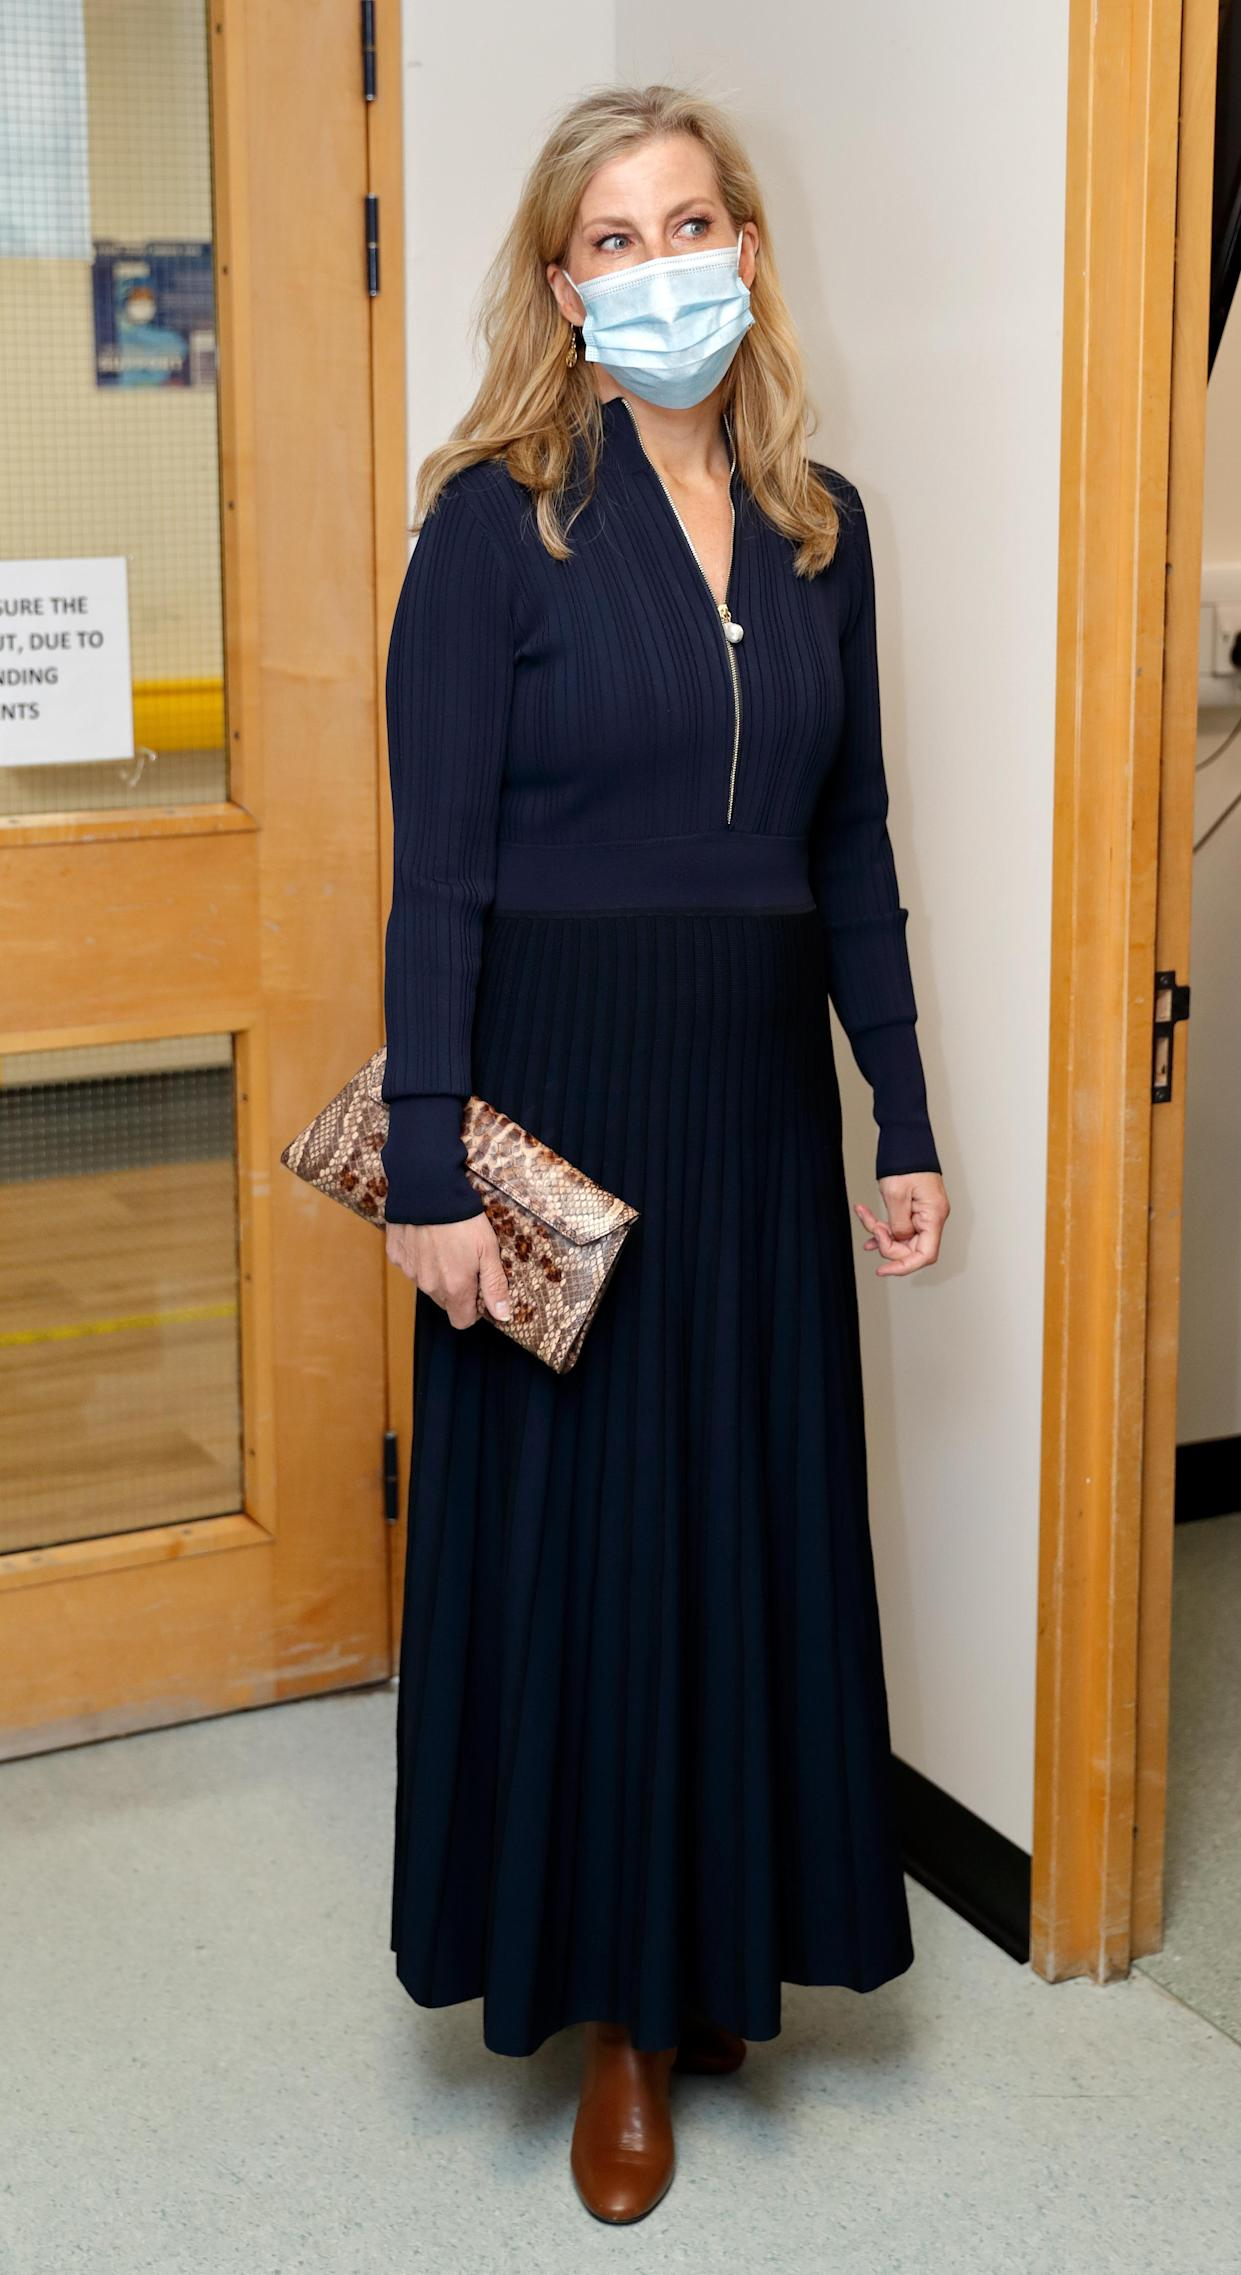 Sophie, Countess of Wessex opted for a minimalist, professional yet casual look, when she visited Frimley Park Hospital to mark International Nurses Day on May 12, 2021 in Camberley, England. (Getty Images)